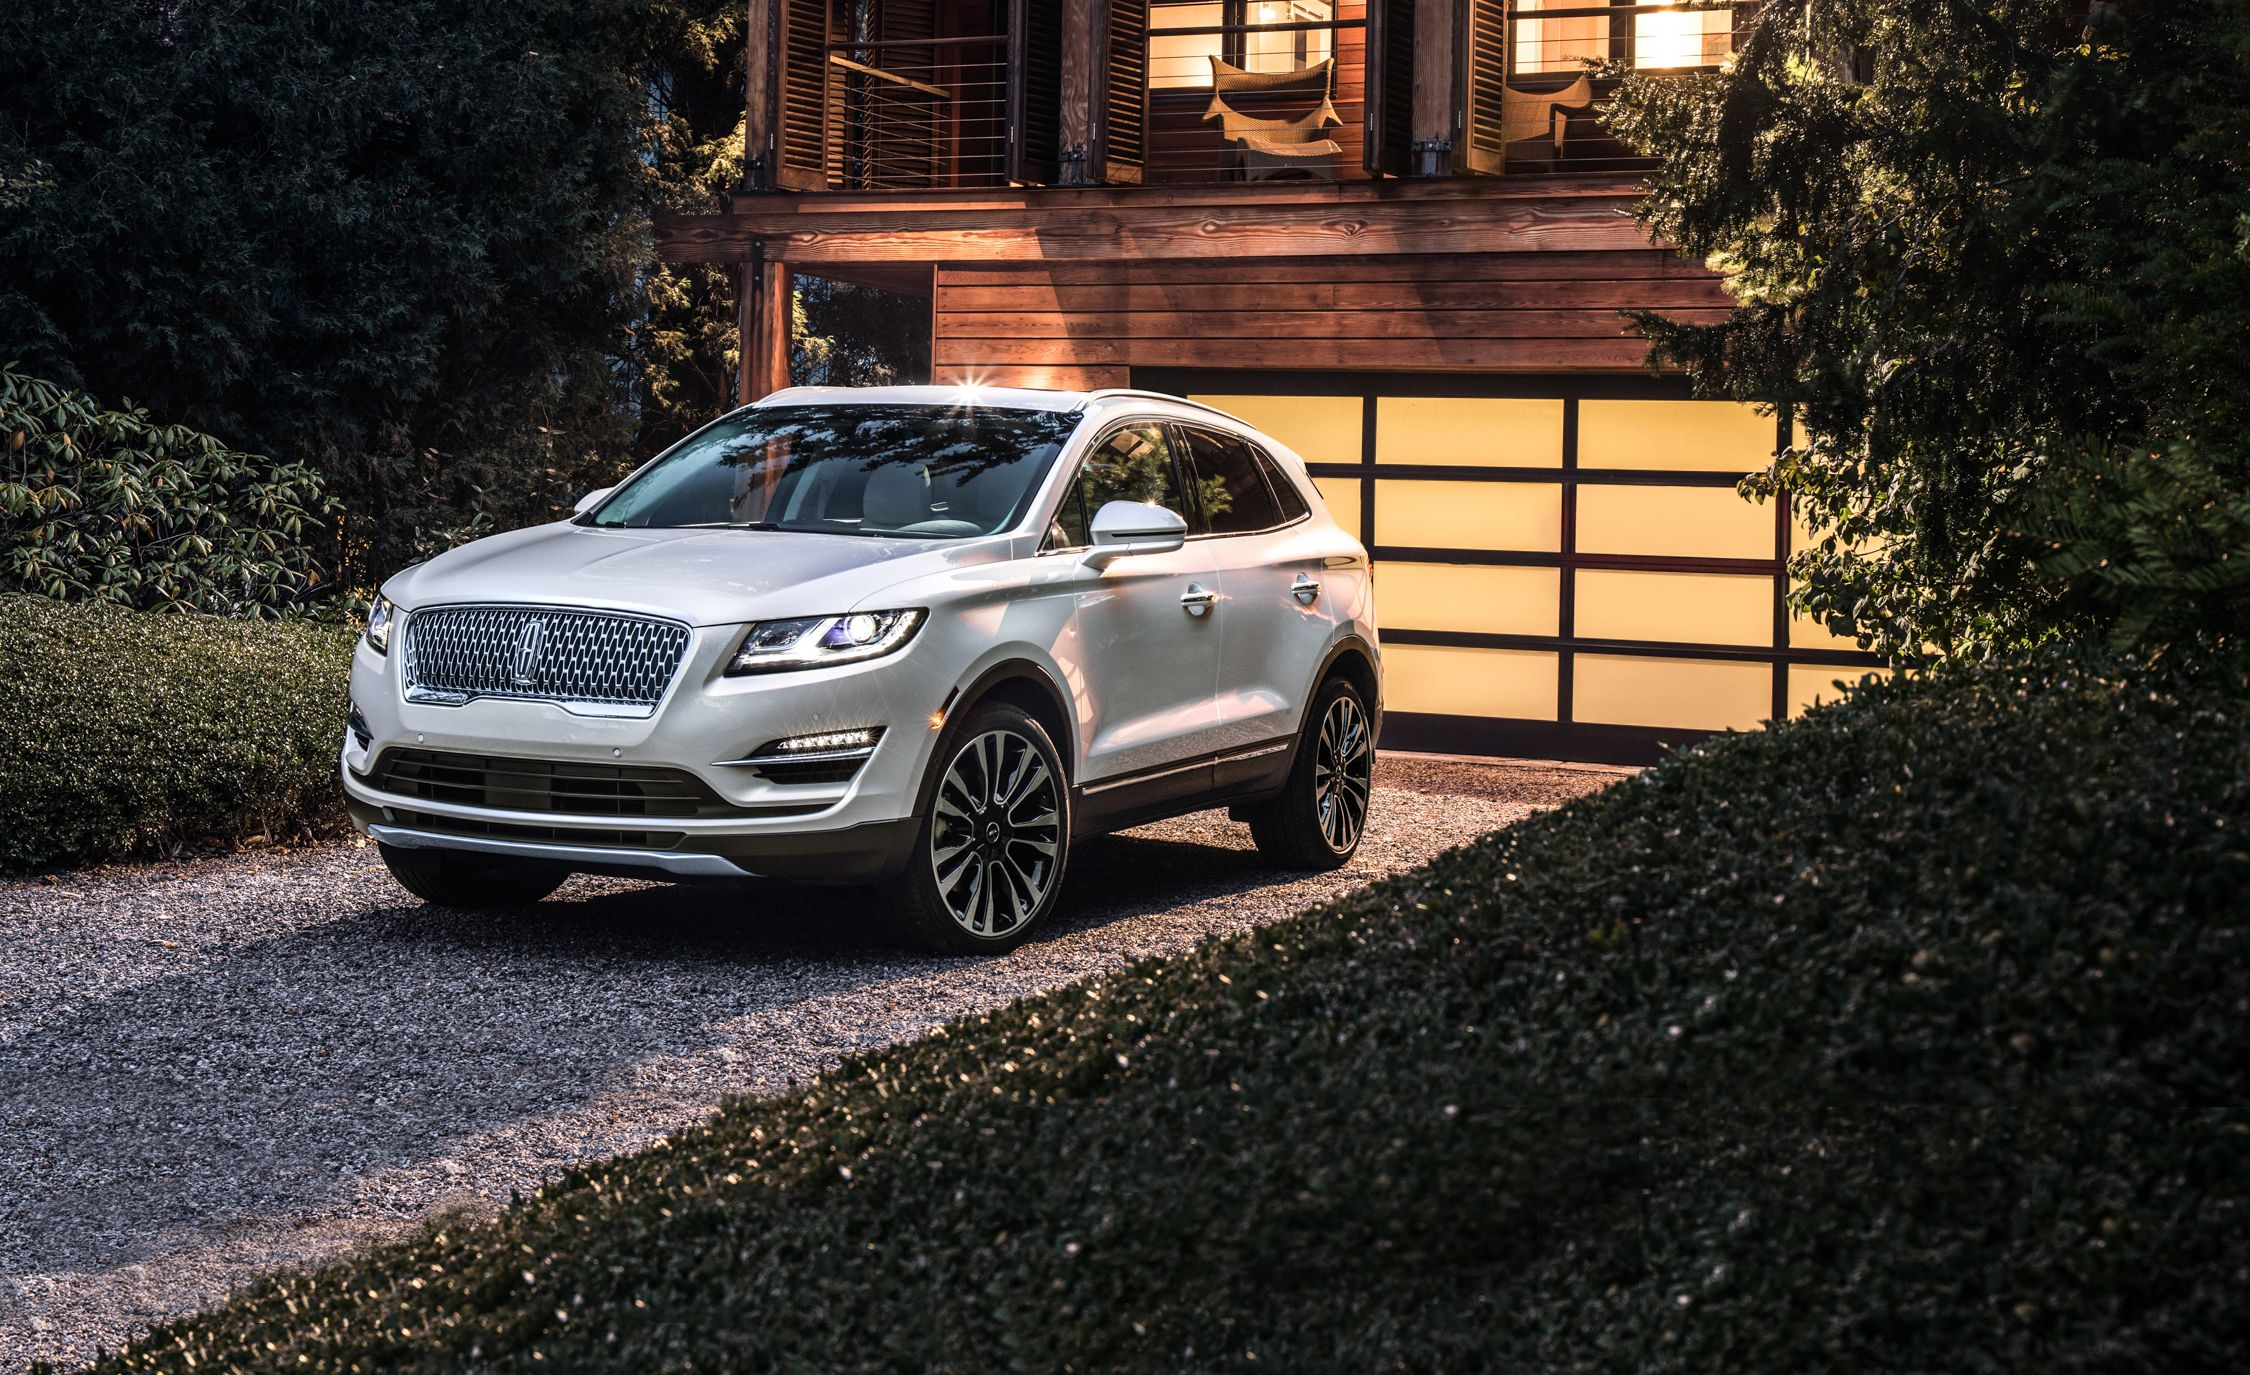 2019 Lincoln MKC Updated with a New Face and Tech | News ...